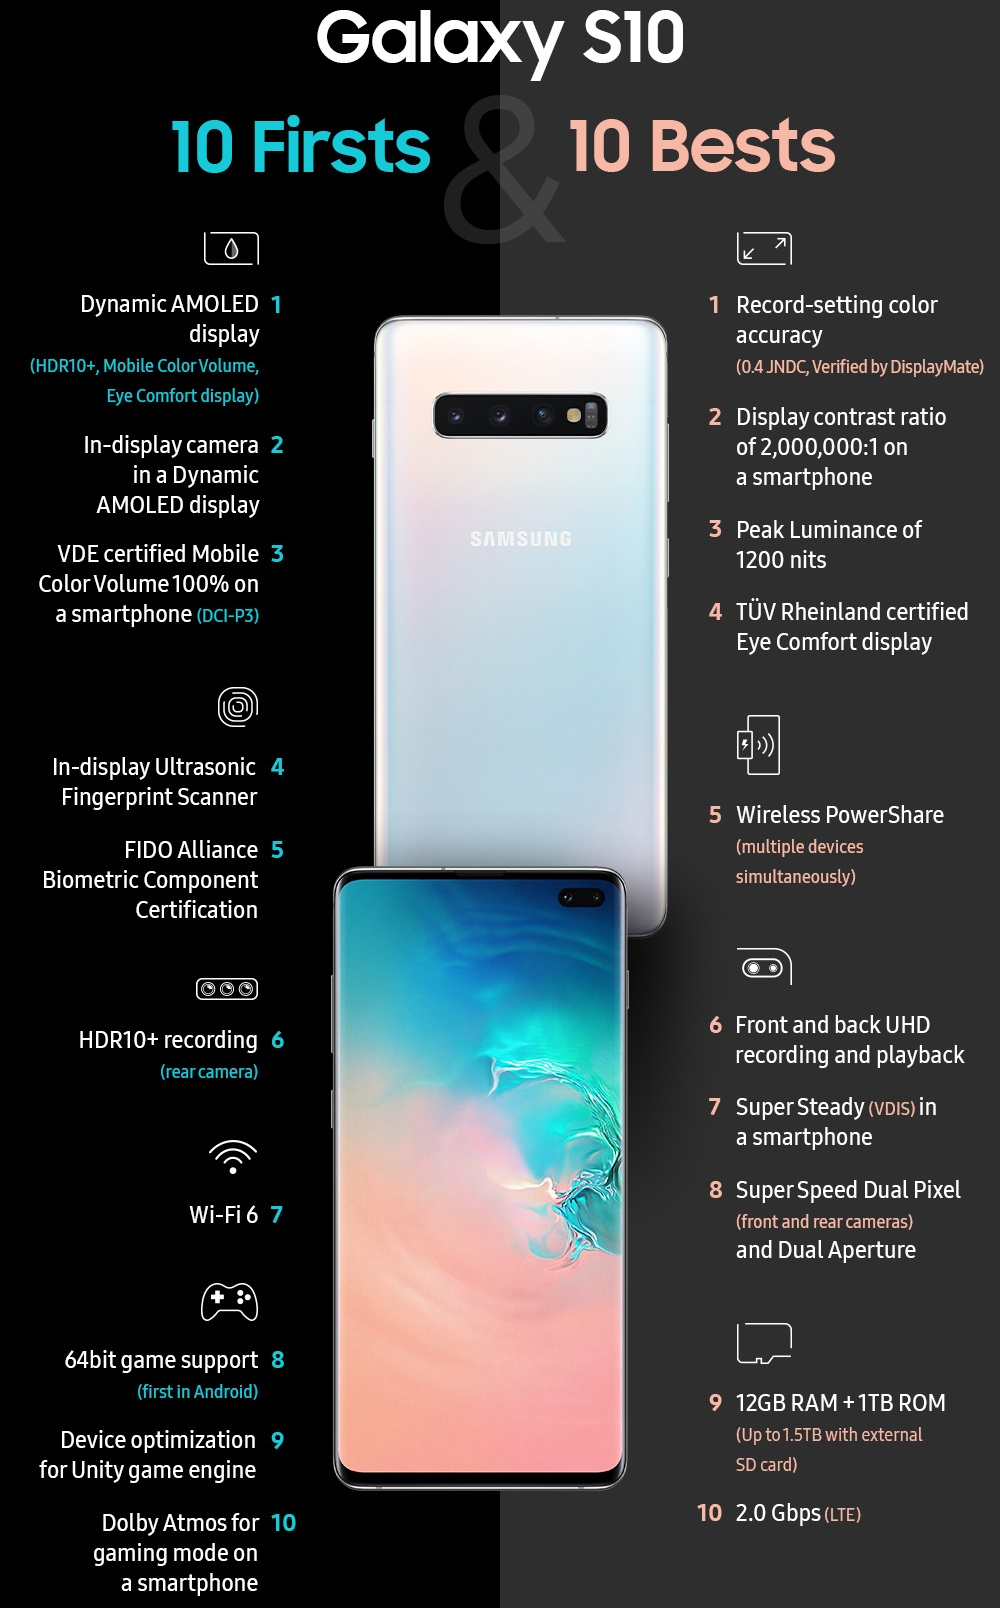 Galaxy S10 features that redefine the smartphone experience